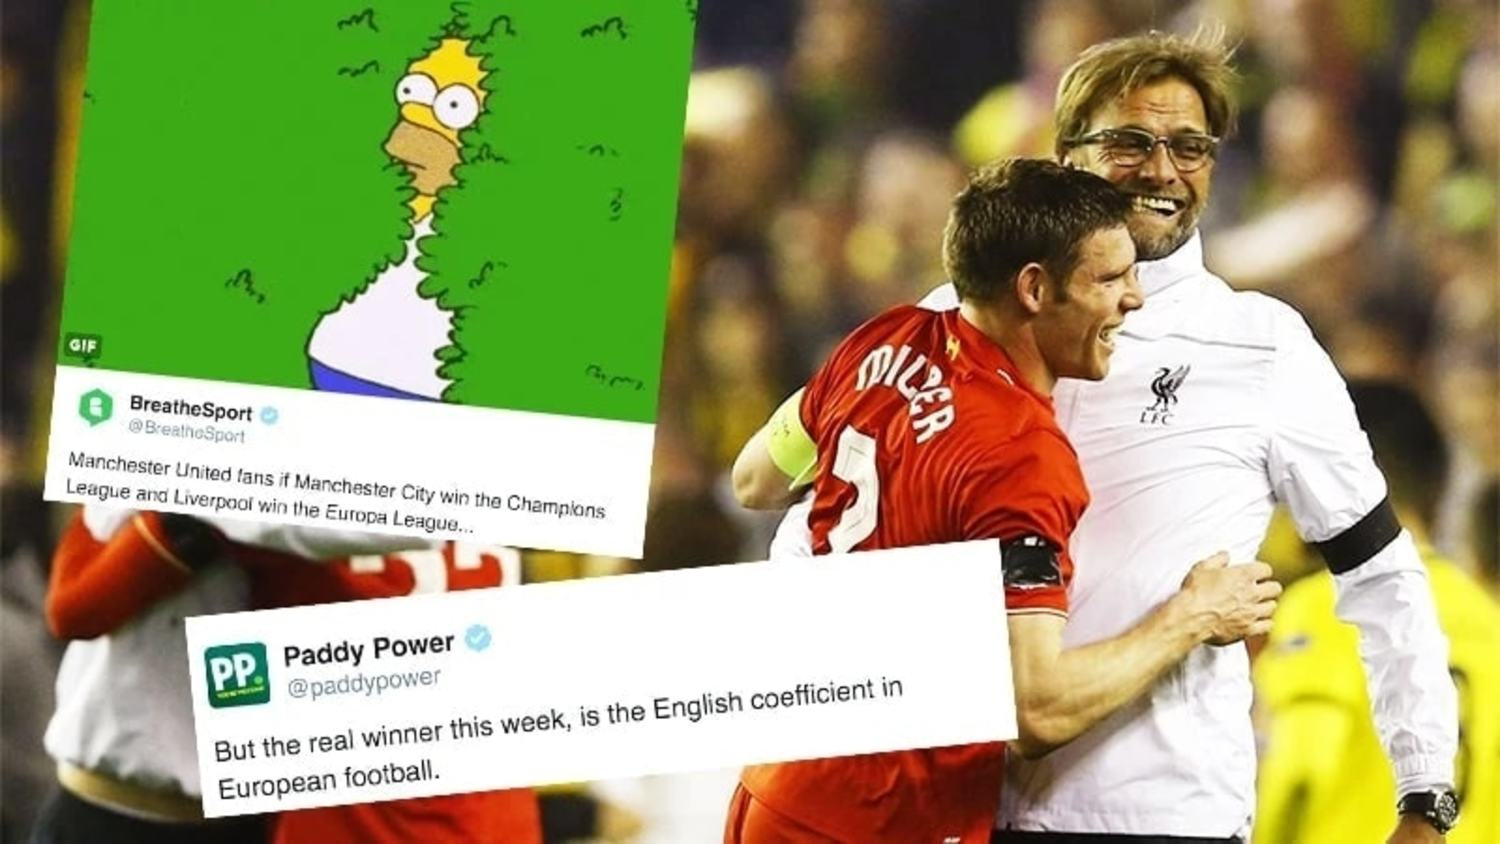 How the Internet Reacted to Liverpool's Unbelievable Comeback vs Dortmund